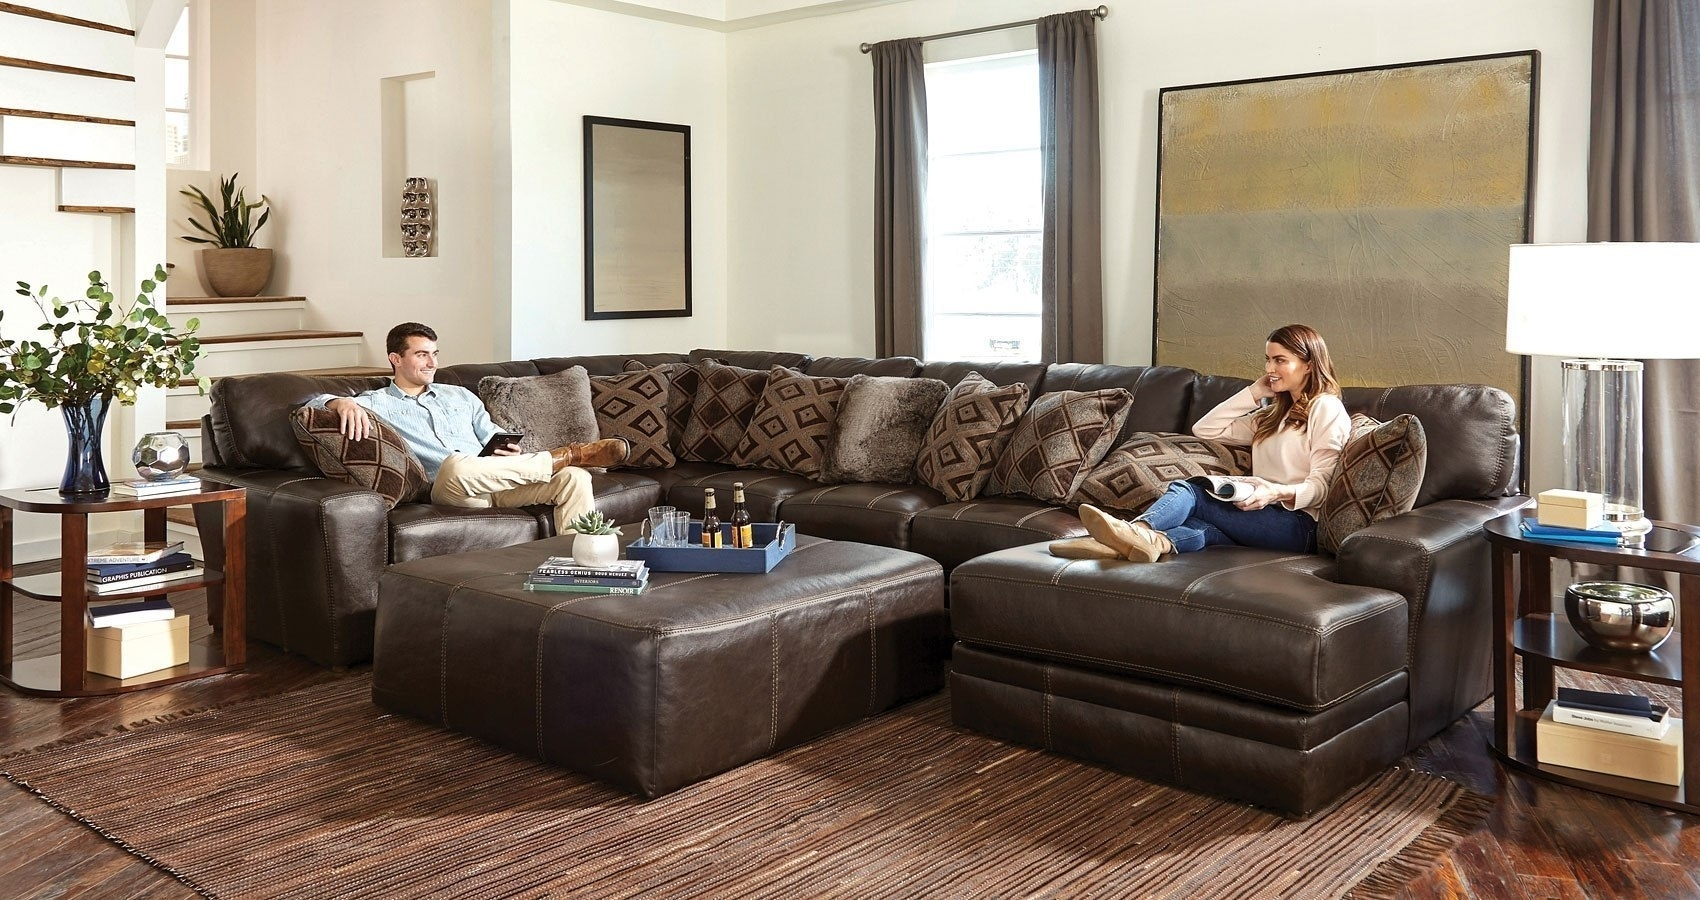 Denali Modular Sectional (Chocolate) Jackson Furniture, 1 Reviews With Regard To Denali Charcoal Grey 6 Piece Reclining Sectionals With 2 Power Headrests (Image 17 of 25)